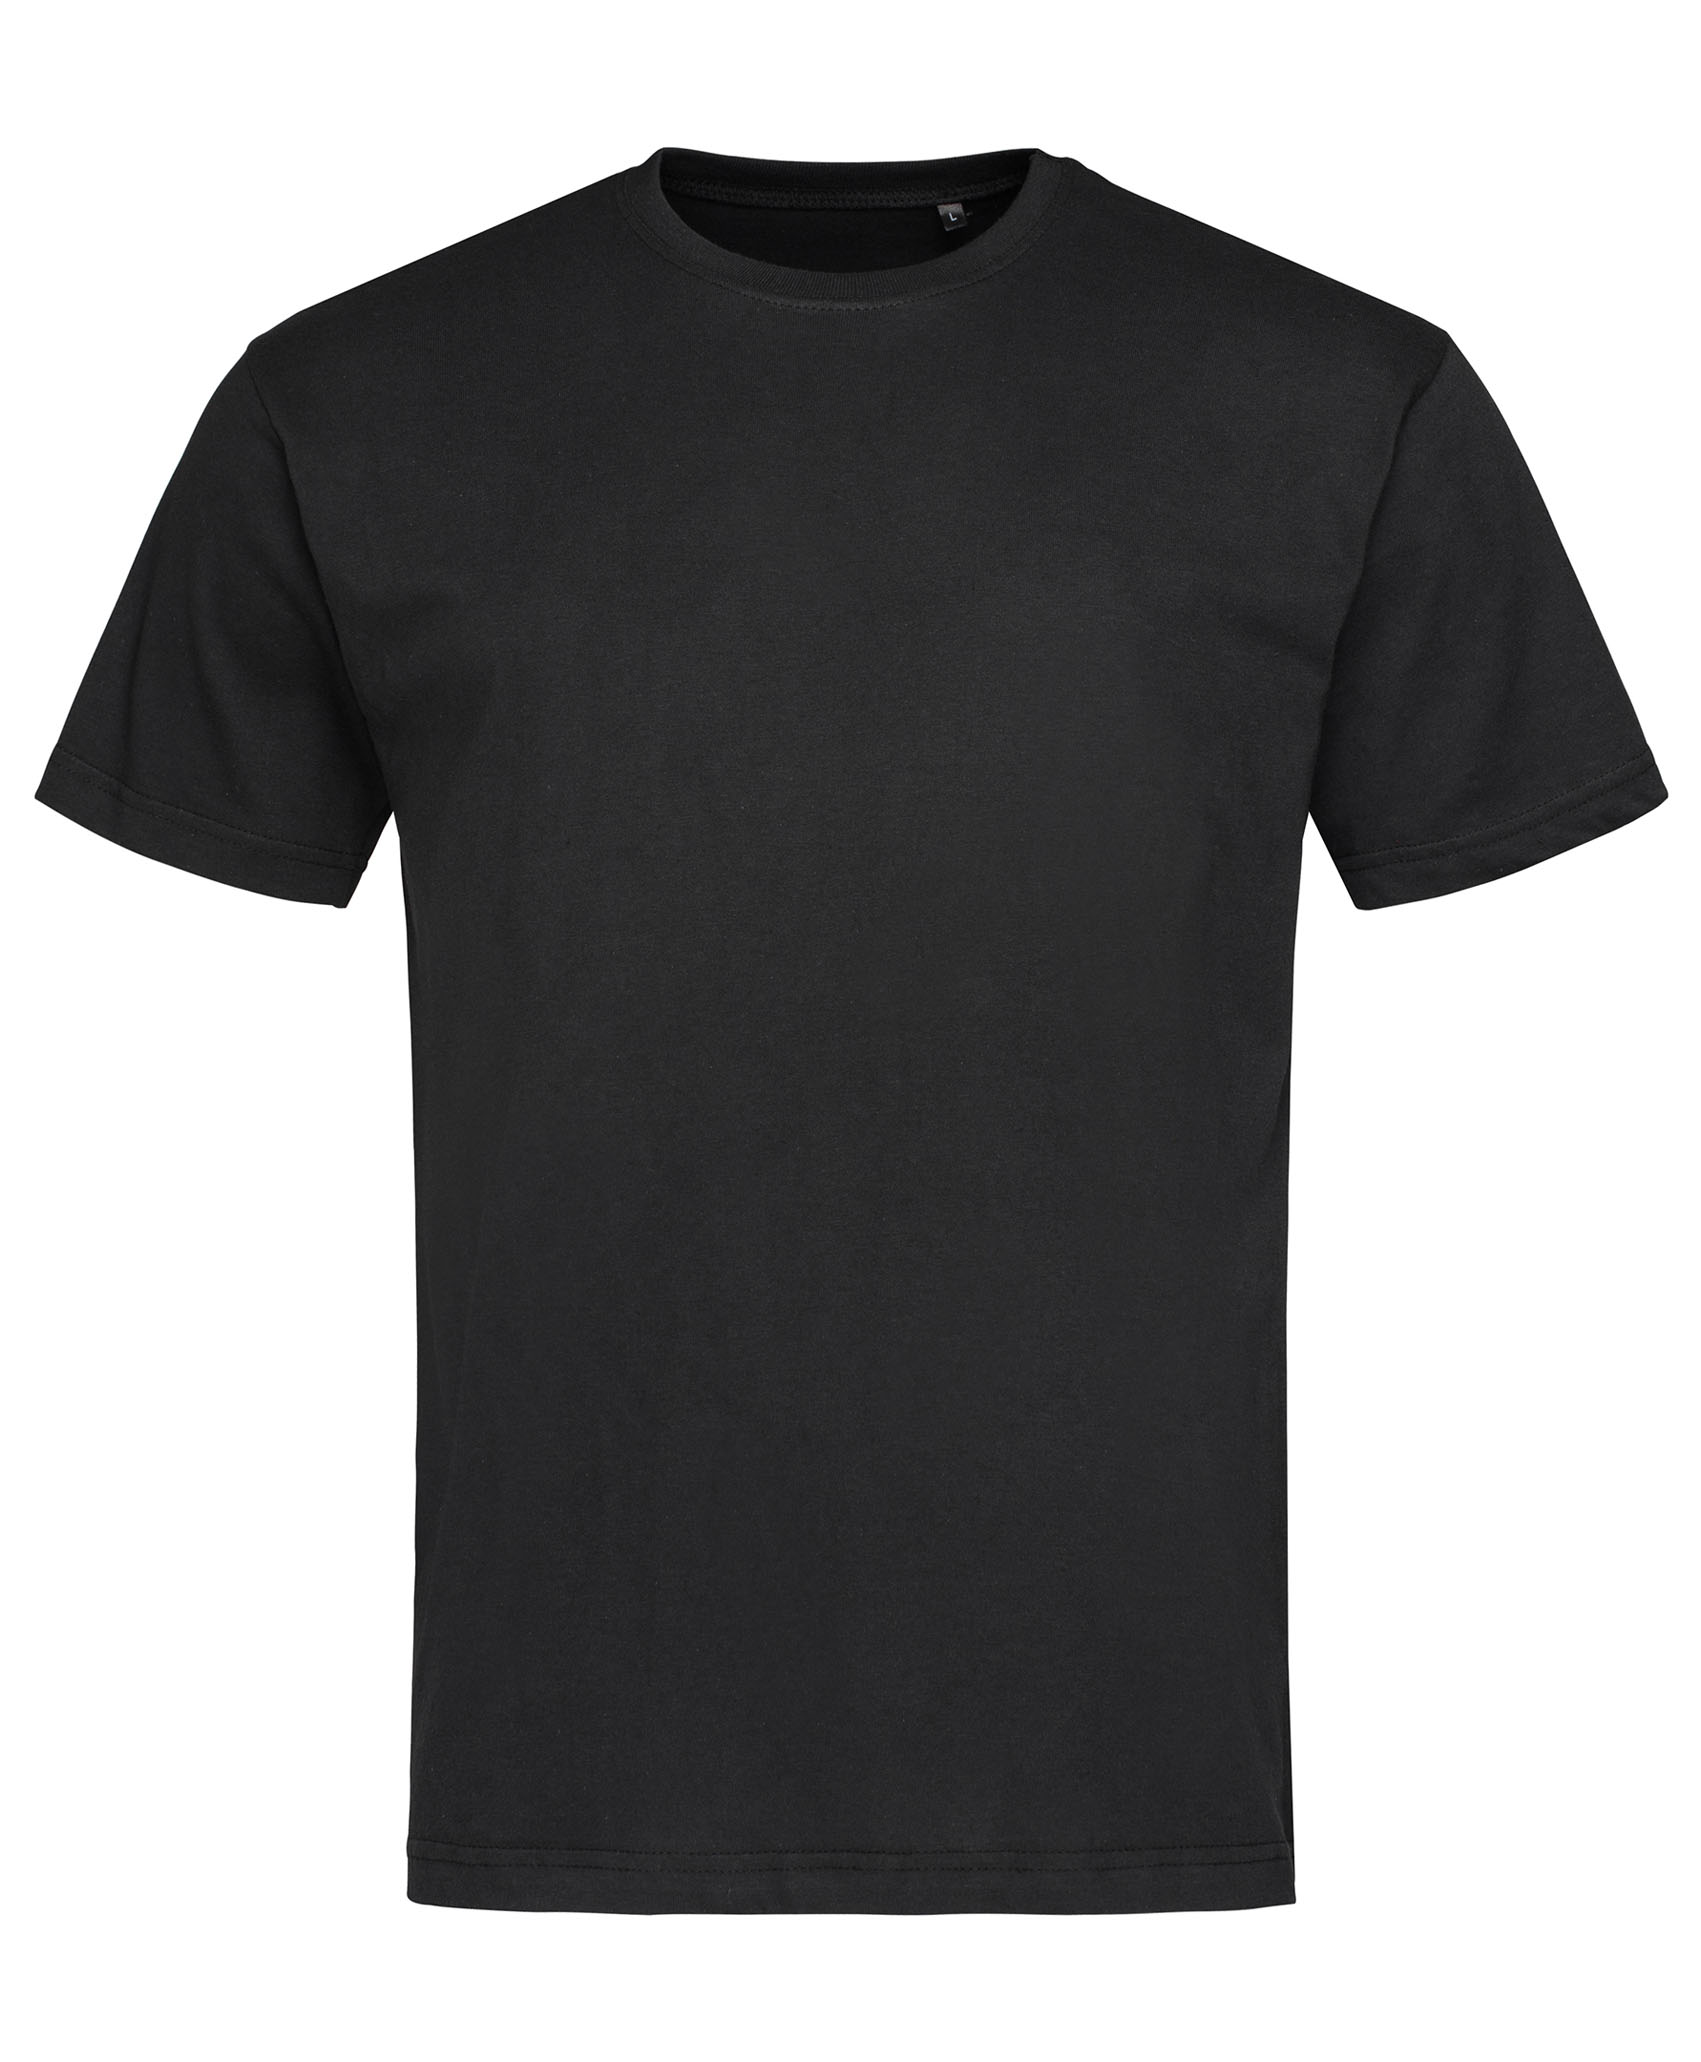 Stedman T-shirt NANO SS for him